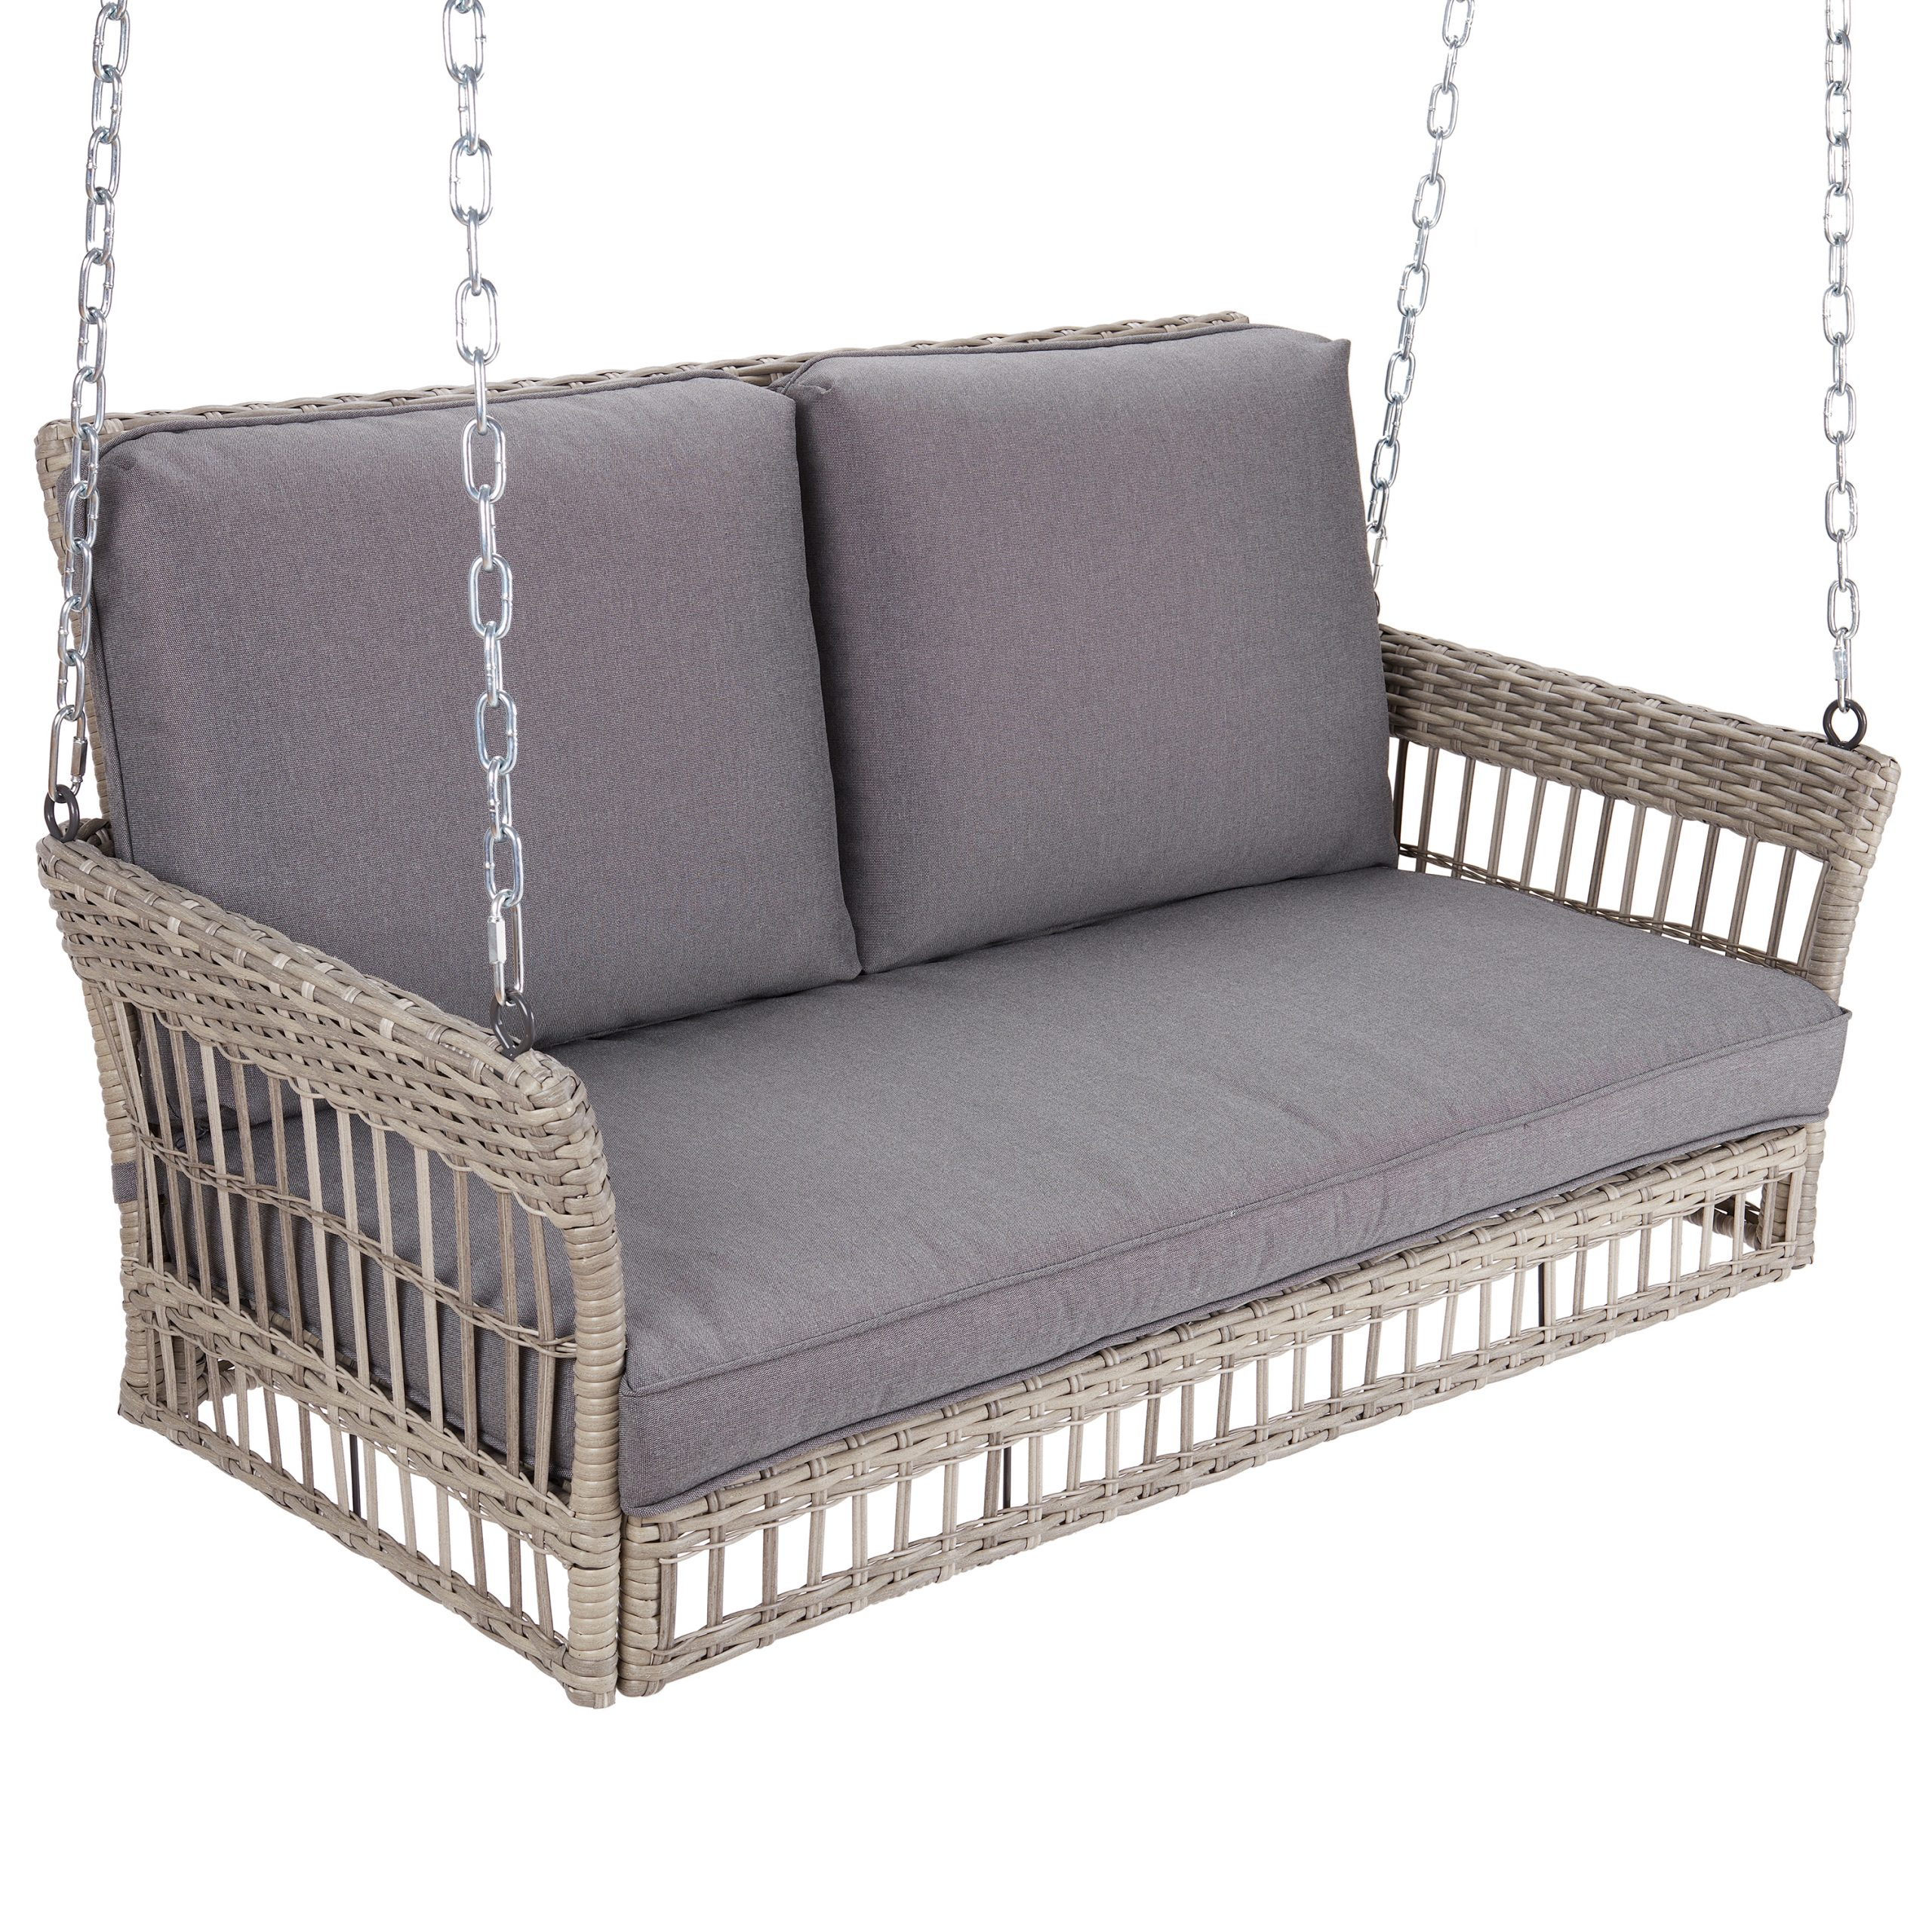 Famous Better Homes & Gardens Belfair Outdoor Wicker Porch Swing Within 2 Person Outdoor Convertible Canopy Swing Gliders With Removable Cushions Beige (Gallery 30 of 30)